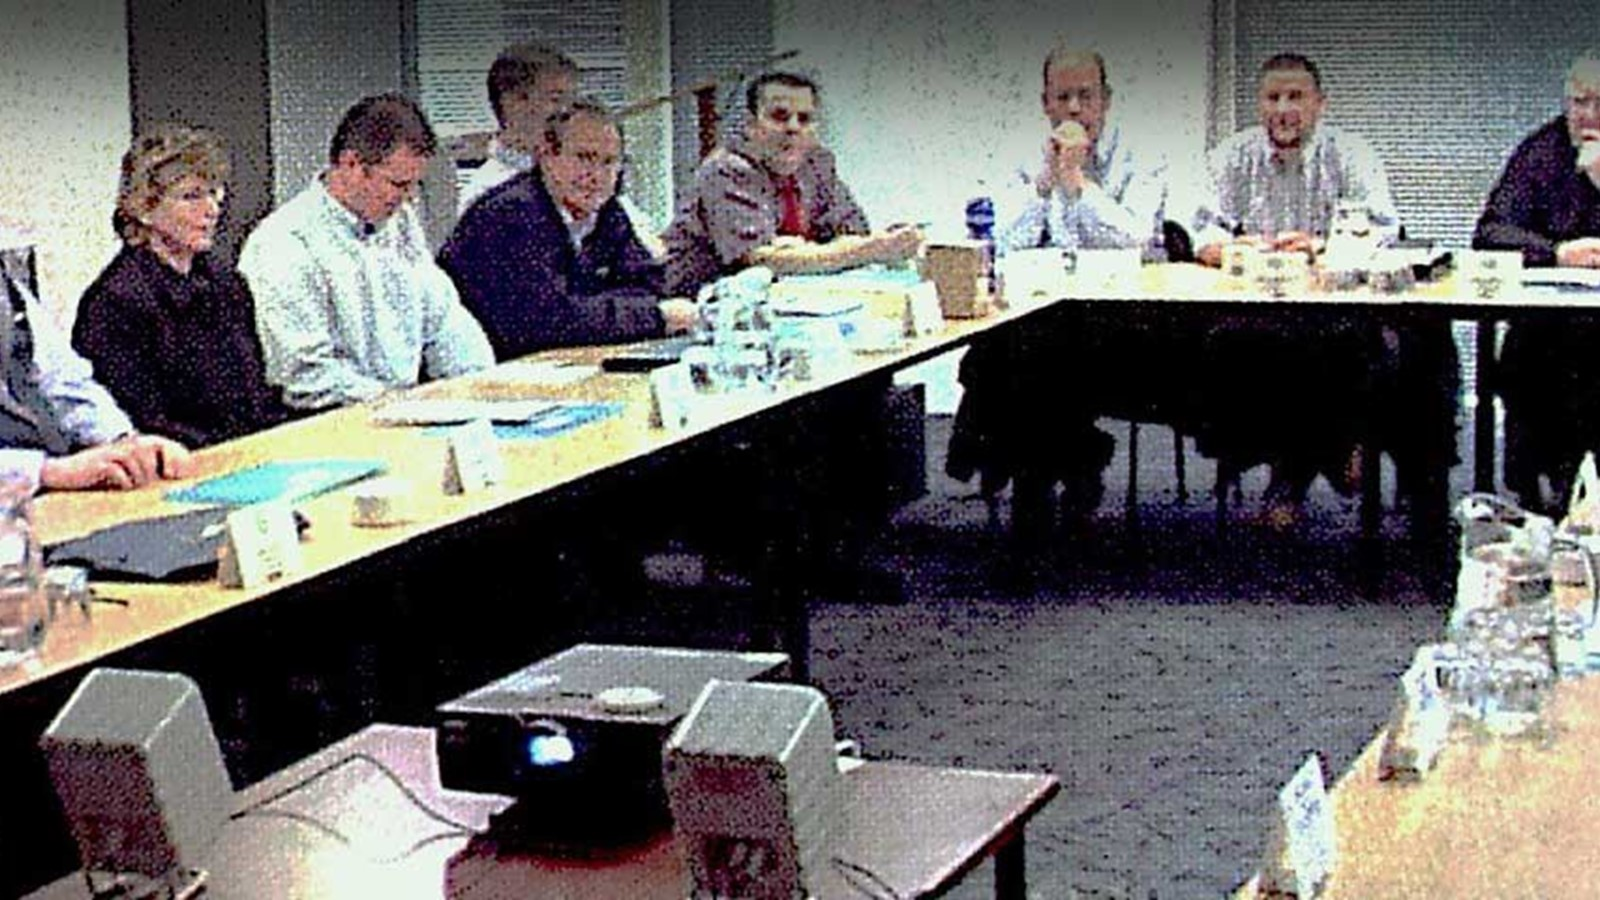 Truckstops General Manager meeting in 2005